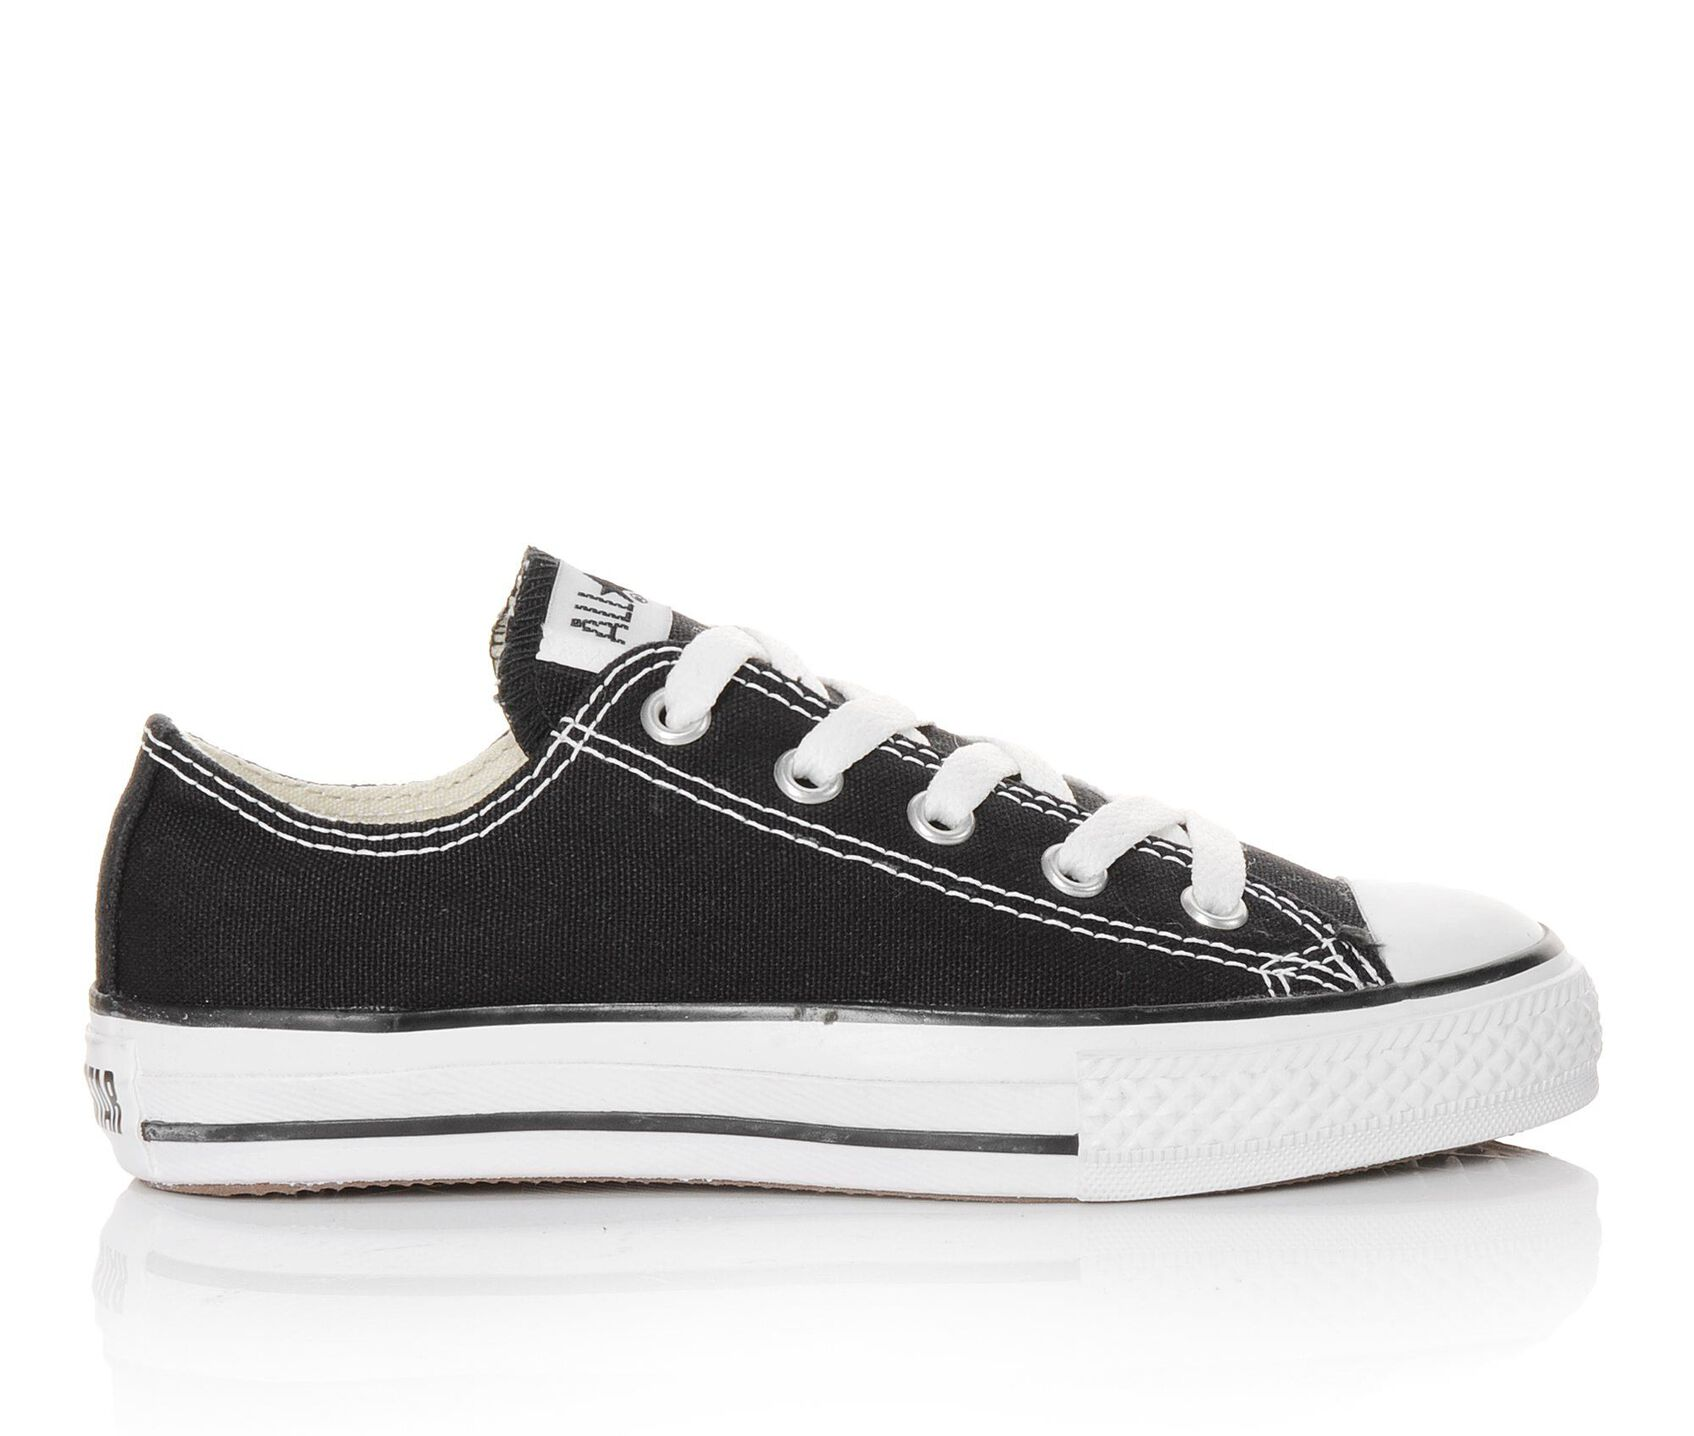 50218fc3f52 ... Converse Little Kid Chuck Taylor All Star Ox Sneakers. Previous